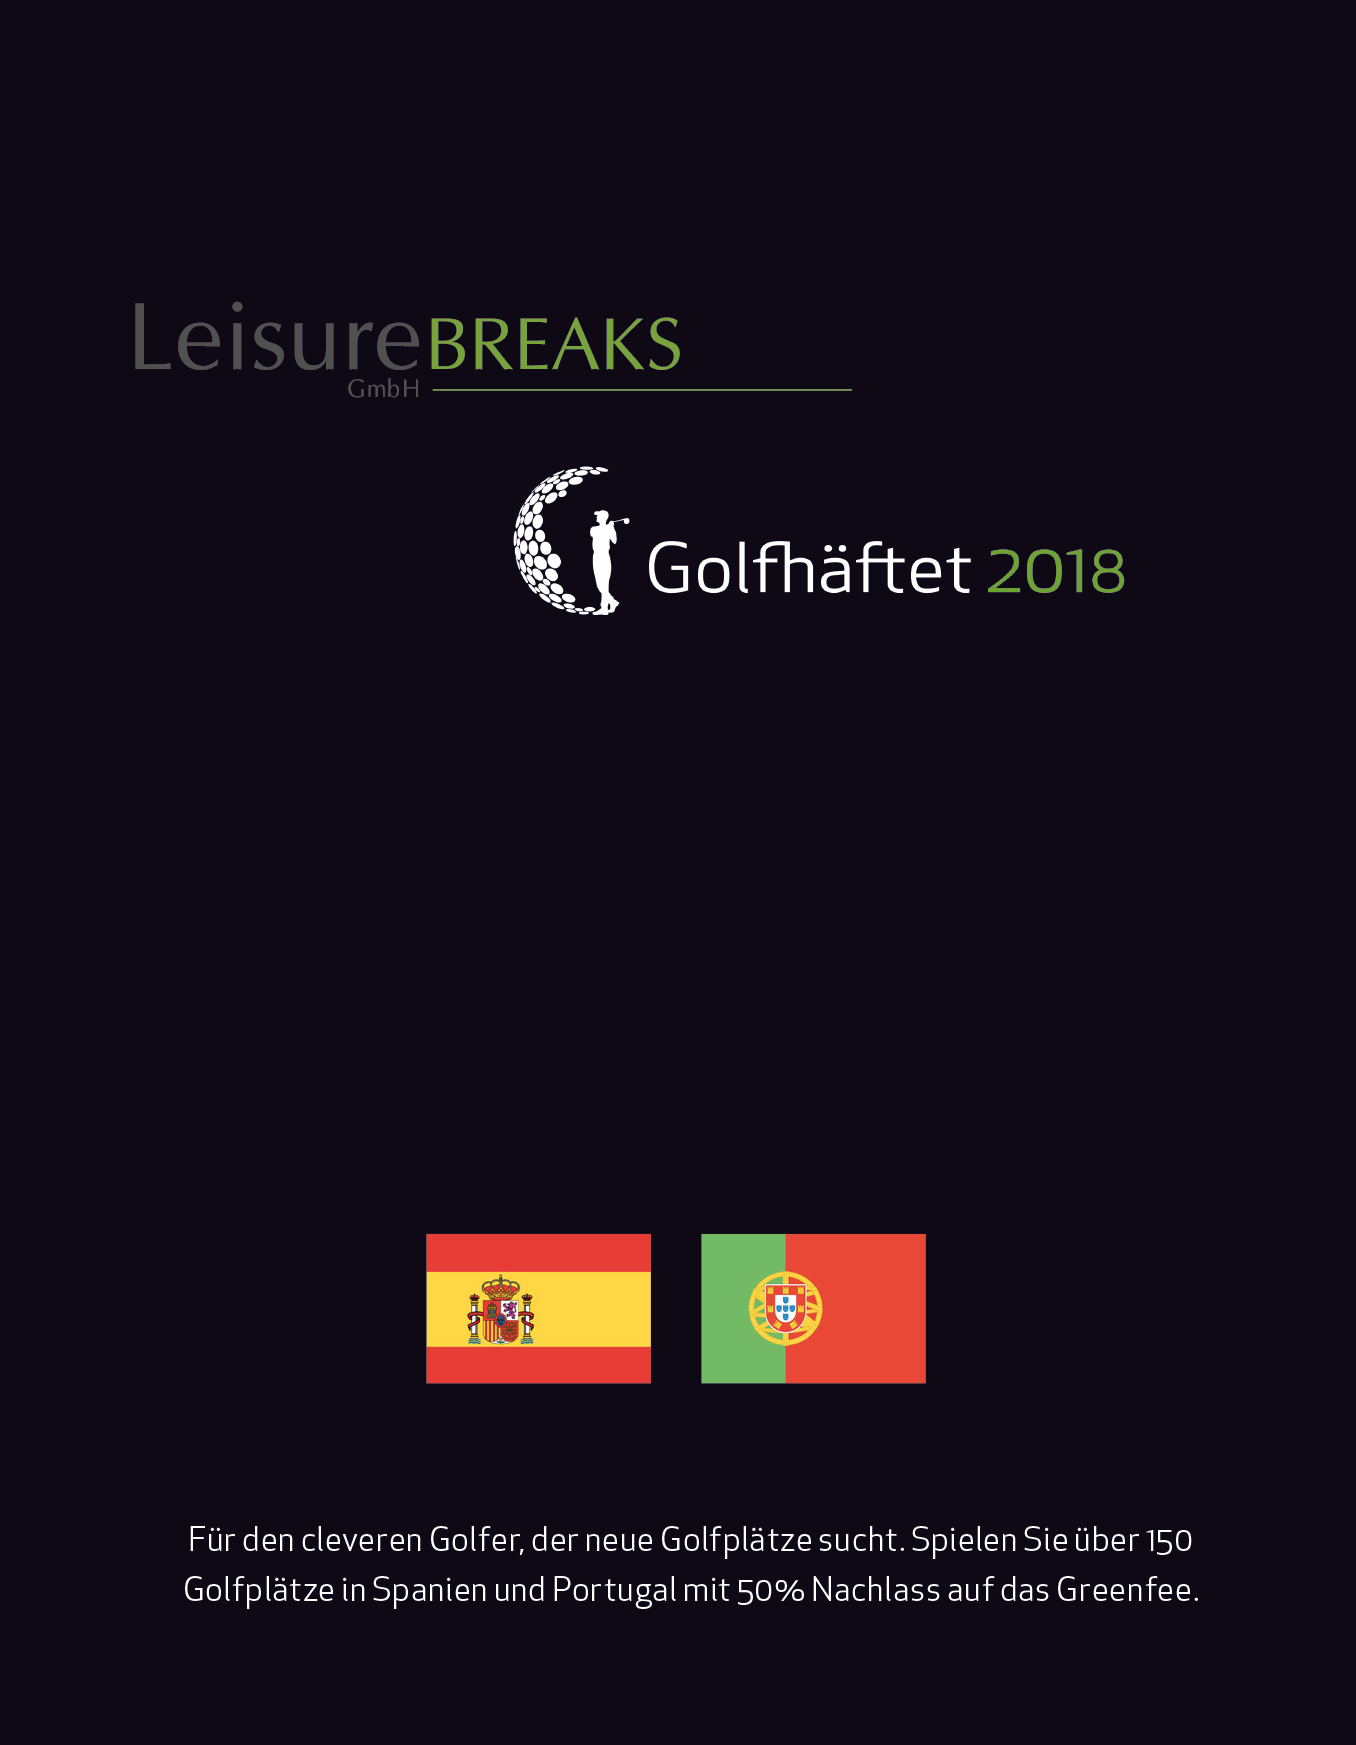 LeisureBREAKS Golfhäftet 2018